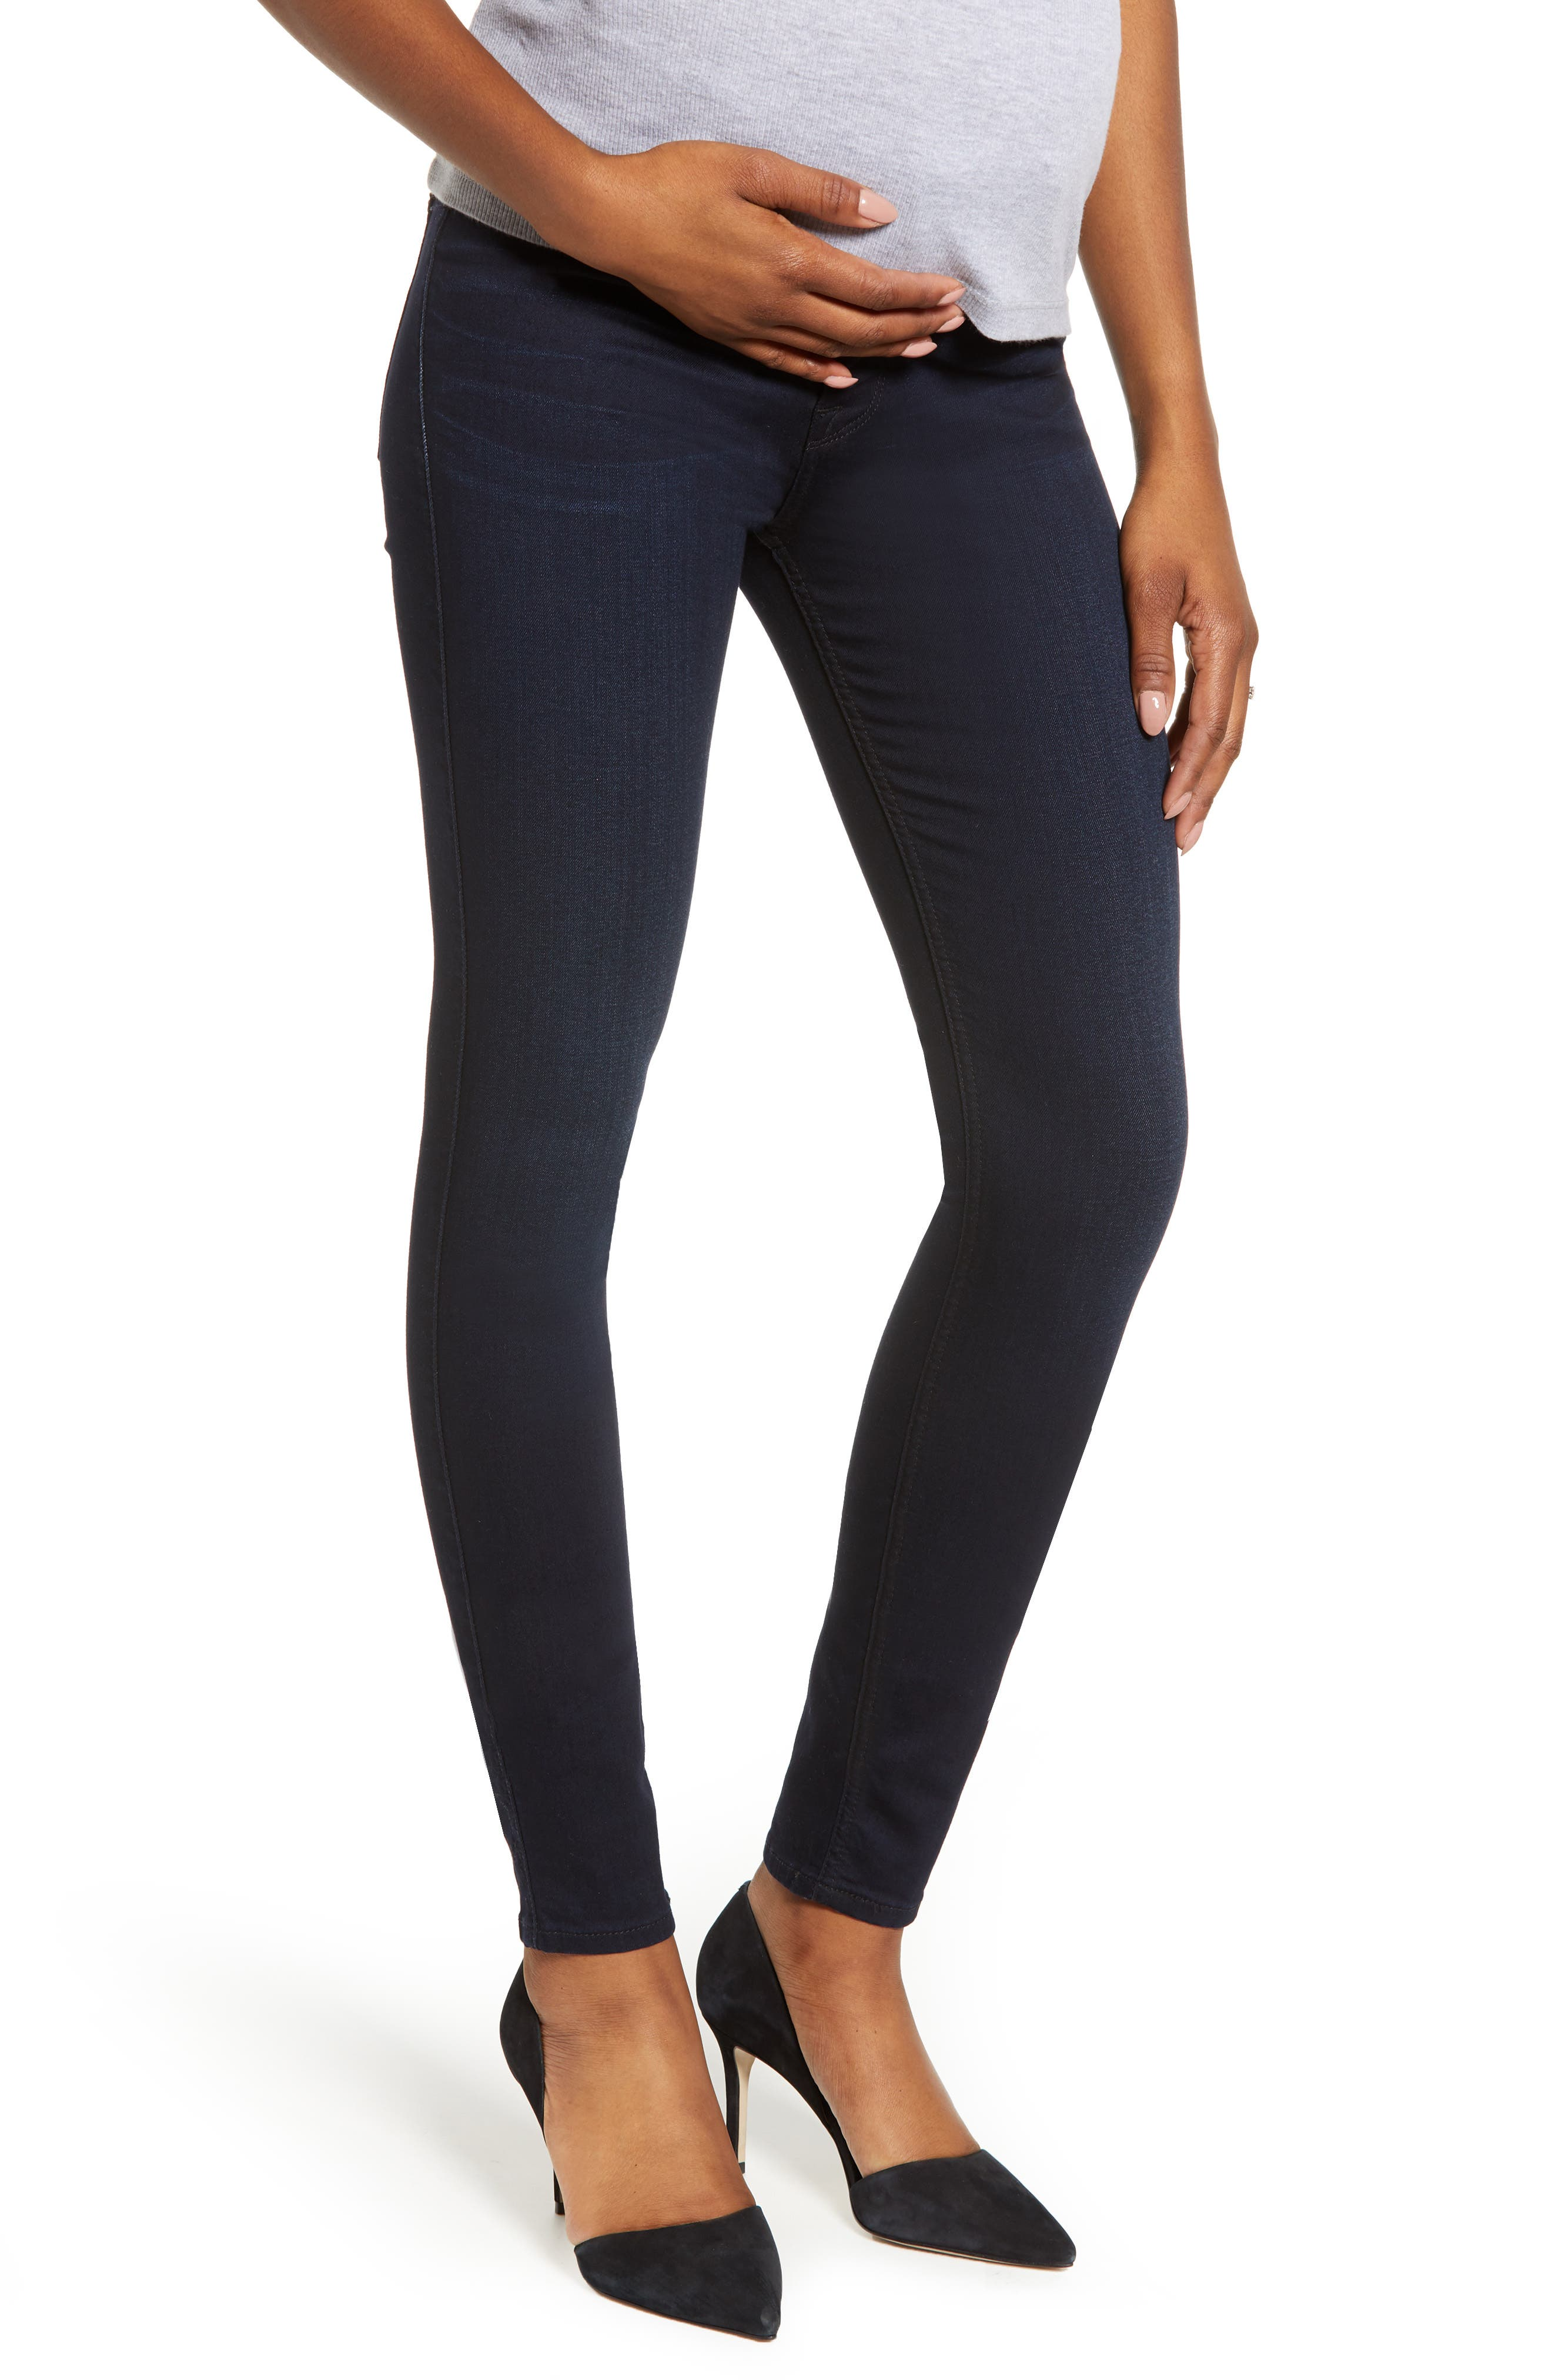 Women's 7 For All Mankind B(Air) High Waist Ankle Skinny Maternity Jeans